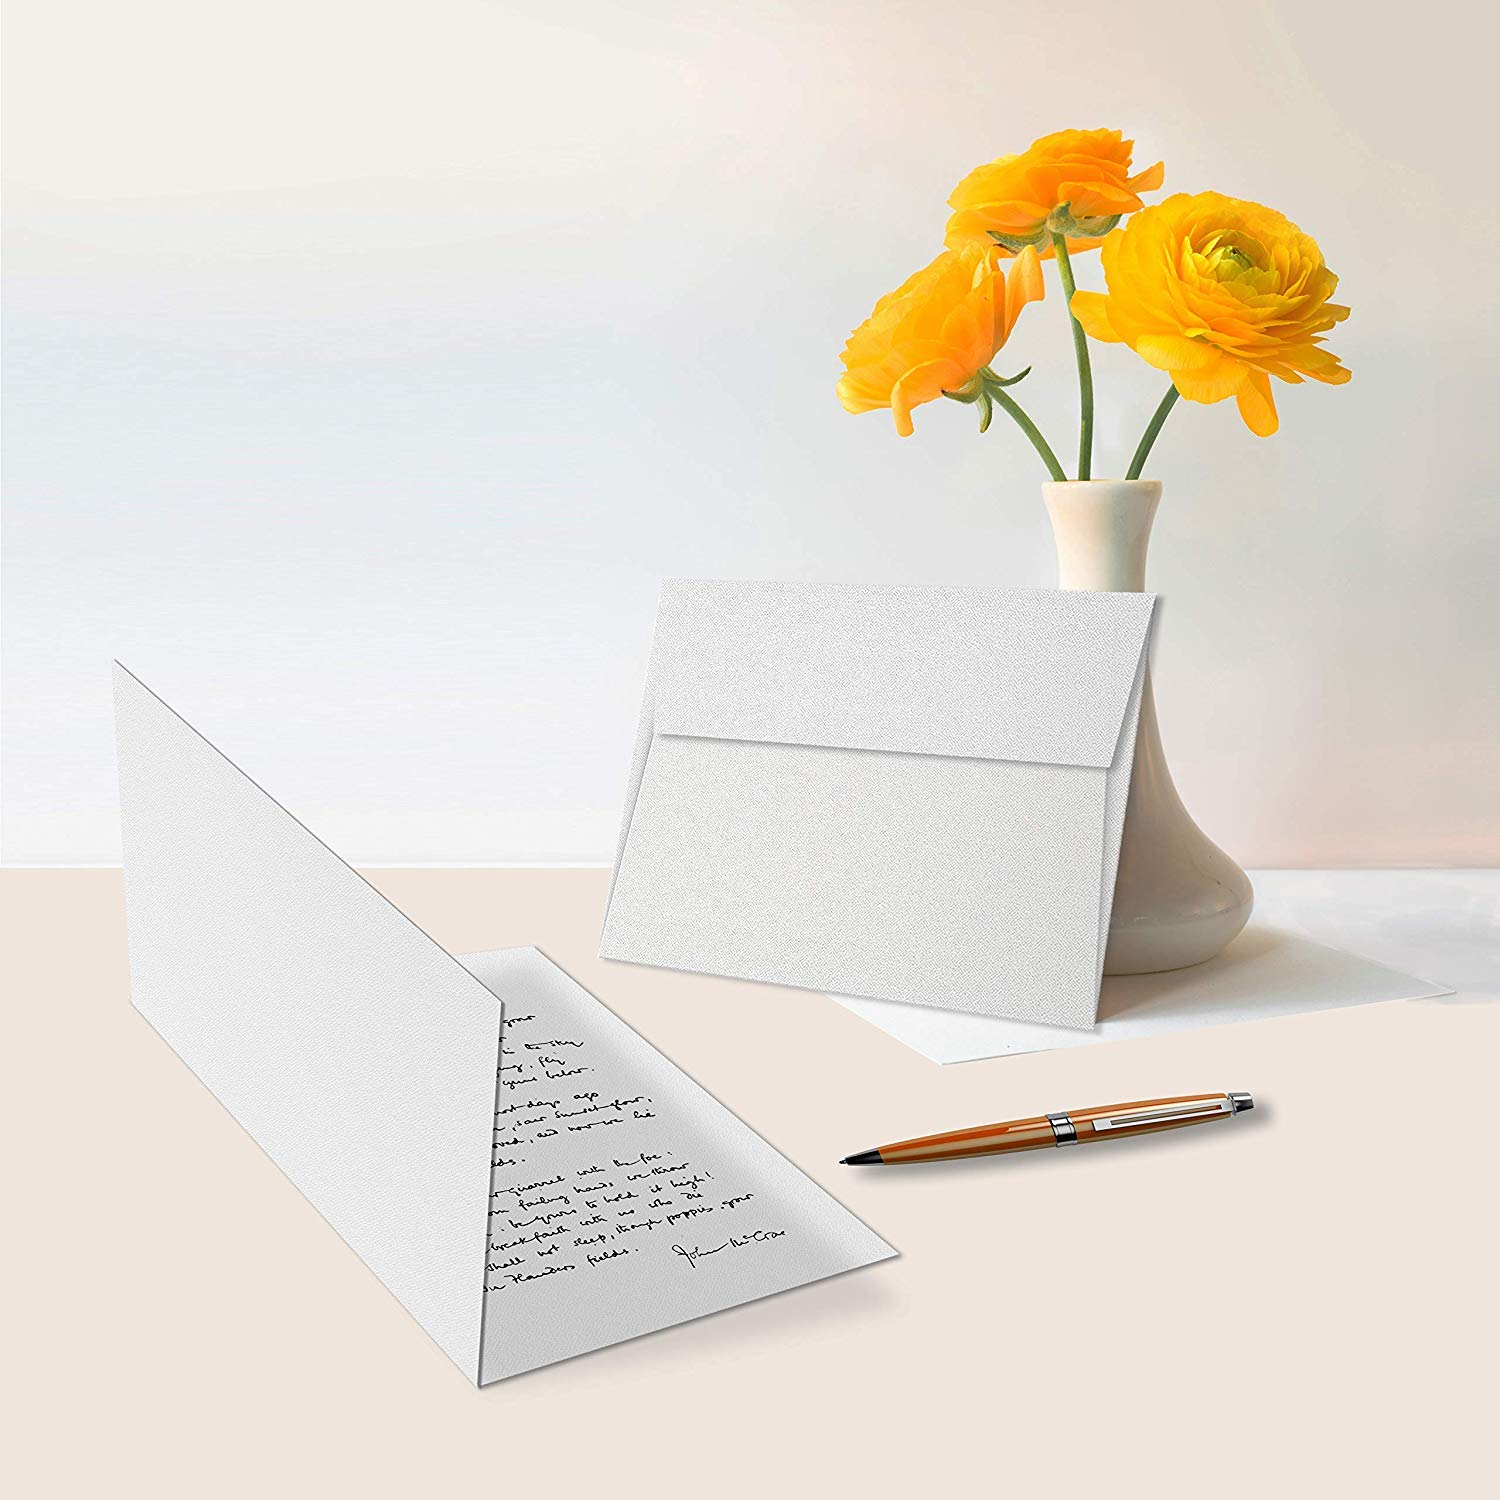 White Blank Greeting Fold Over Cards 80lb. Uncoated, 4 1/2 X 6 Inches Cards - 40 Foldover Greeting Cards Cards and Envelopes by S Superfine Printing (Image #6)